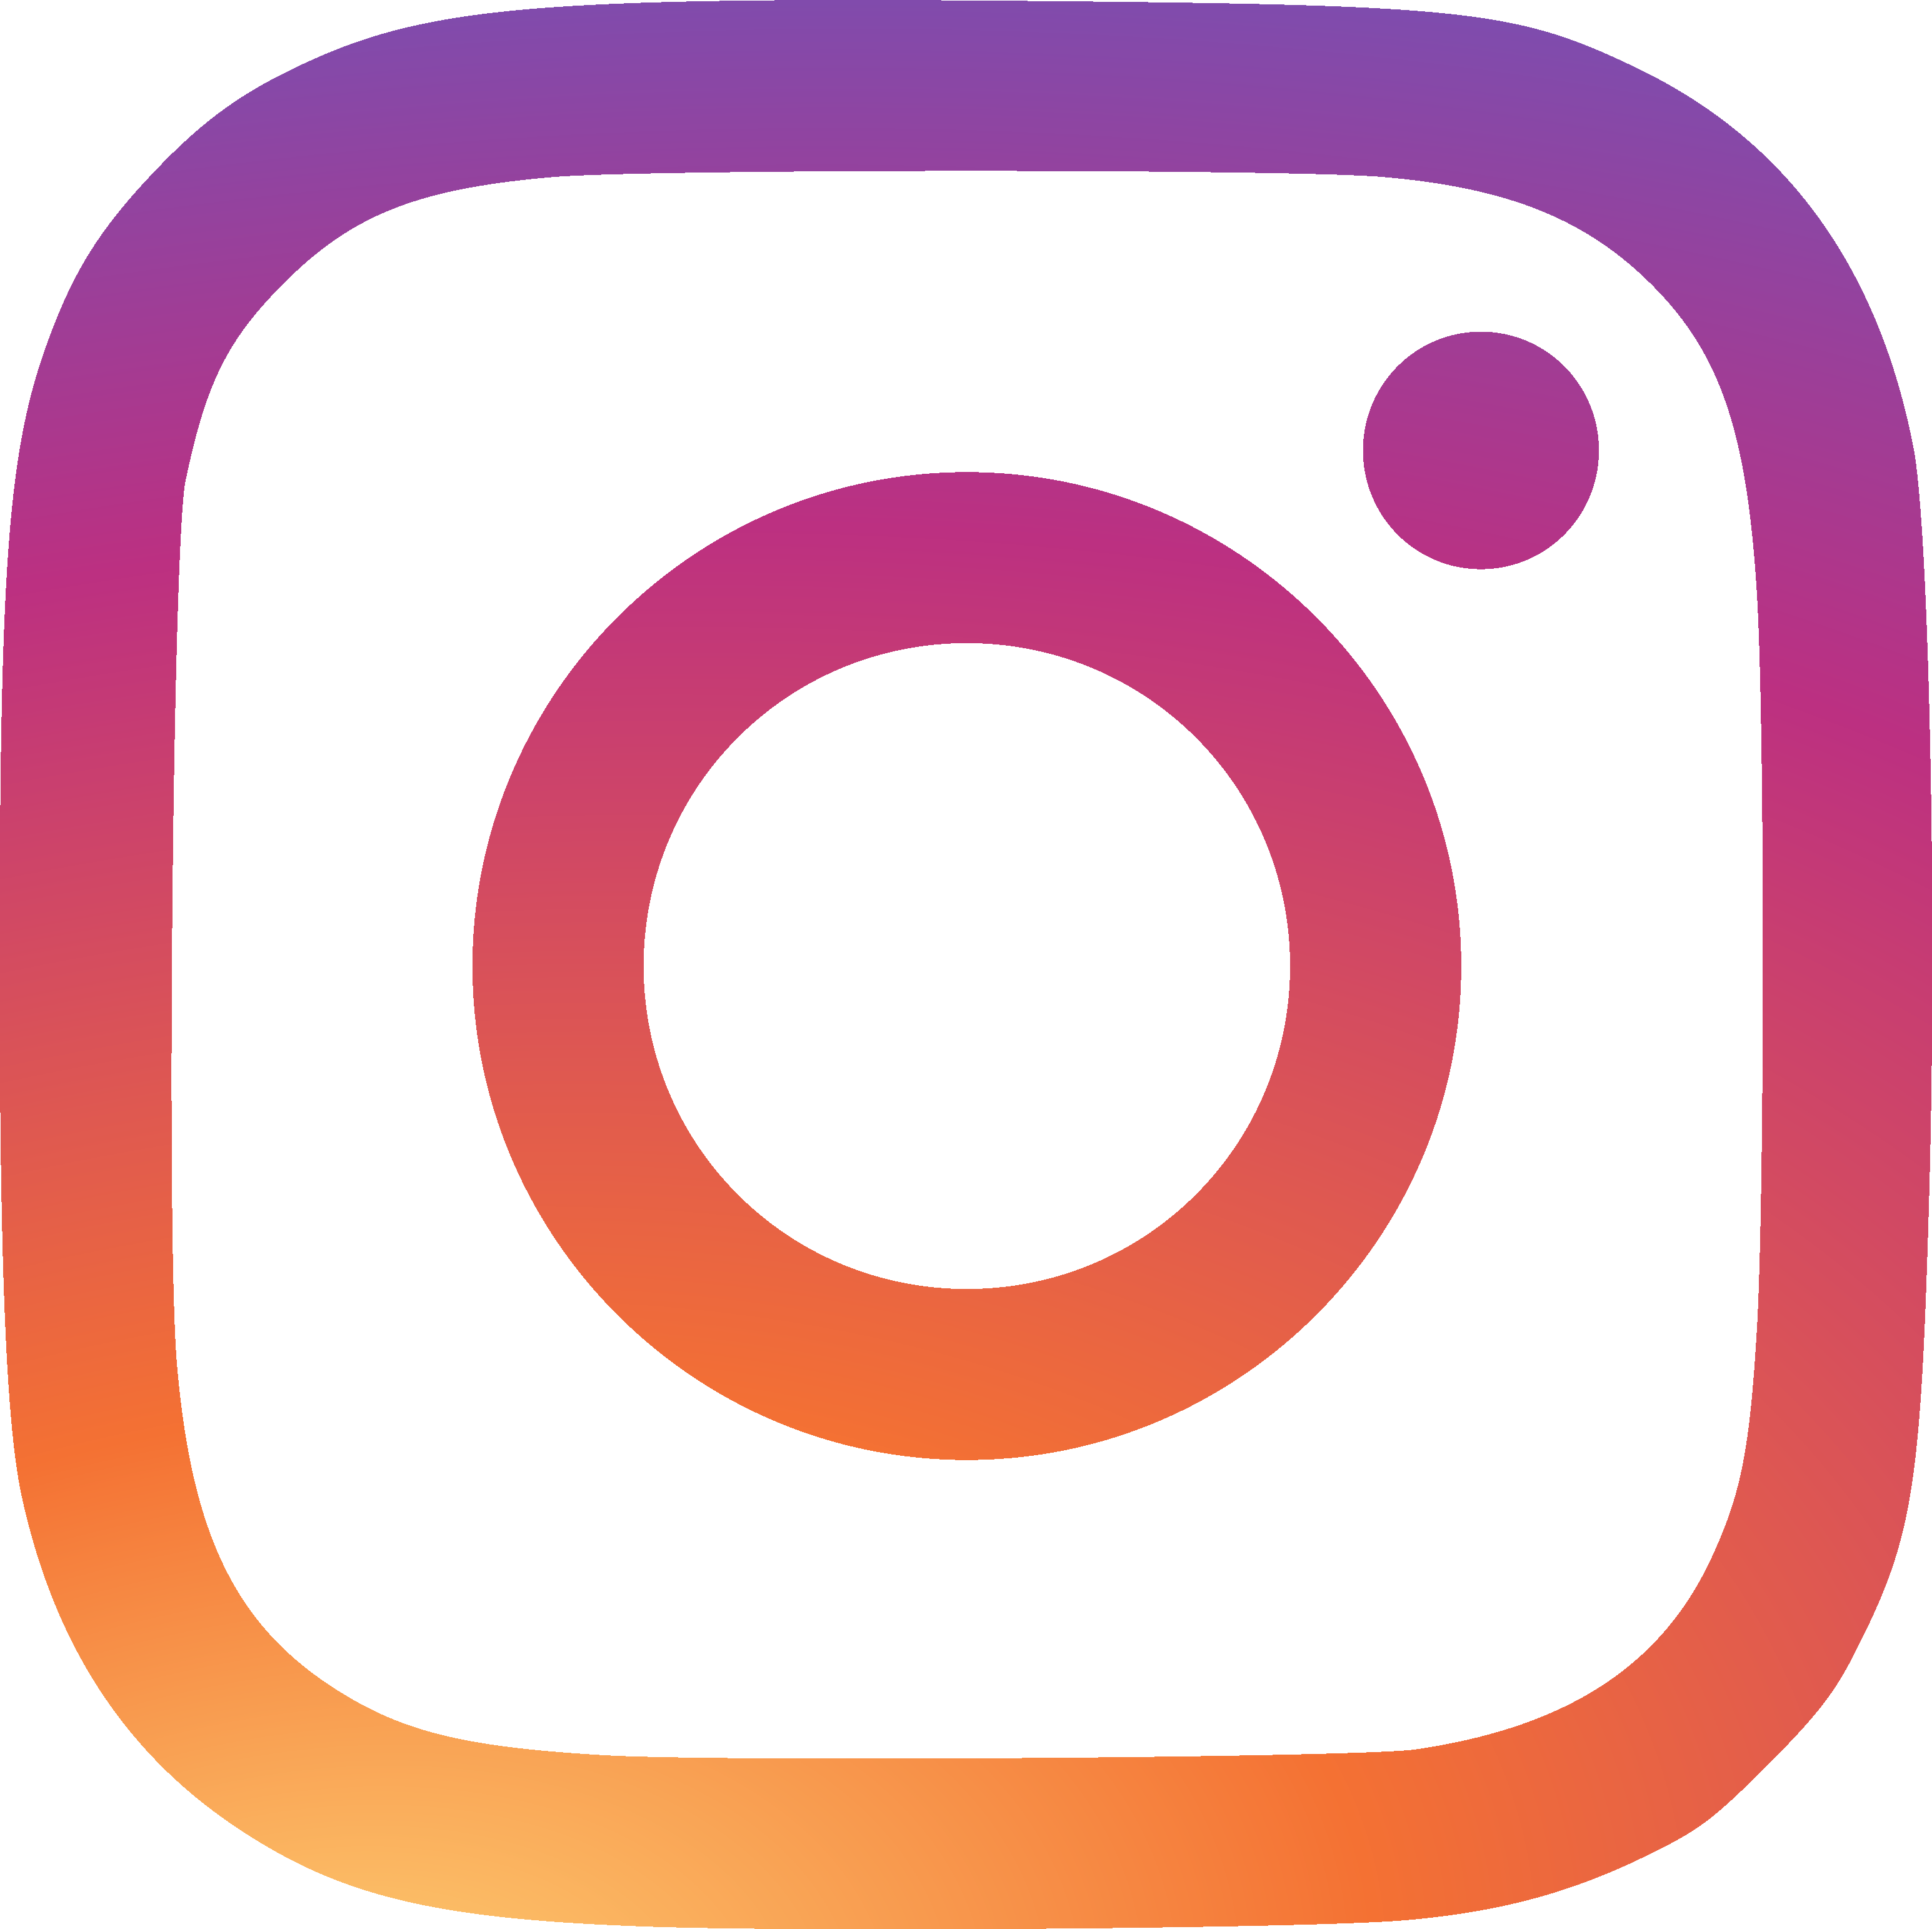 İnstagram Png - Download Computer Neon Instagram Icons HD Image Free PNG HQ PNG ...